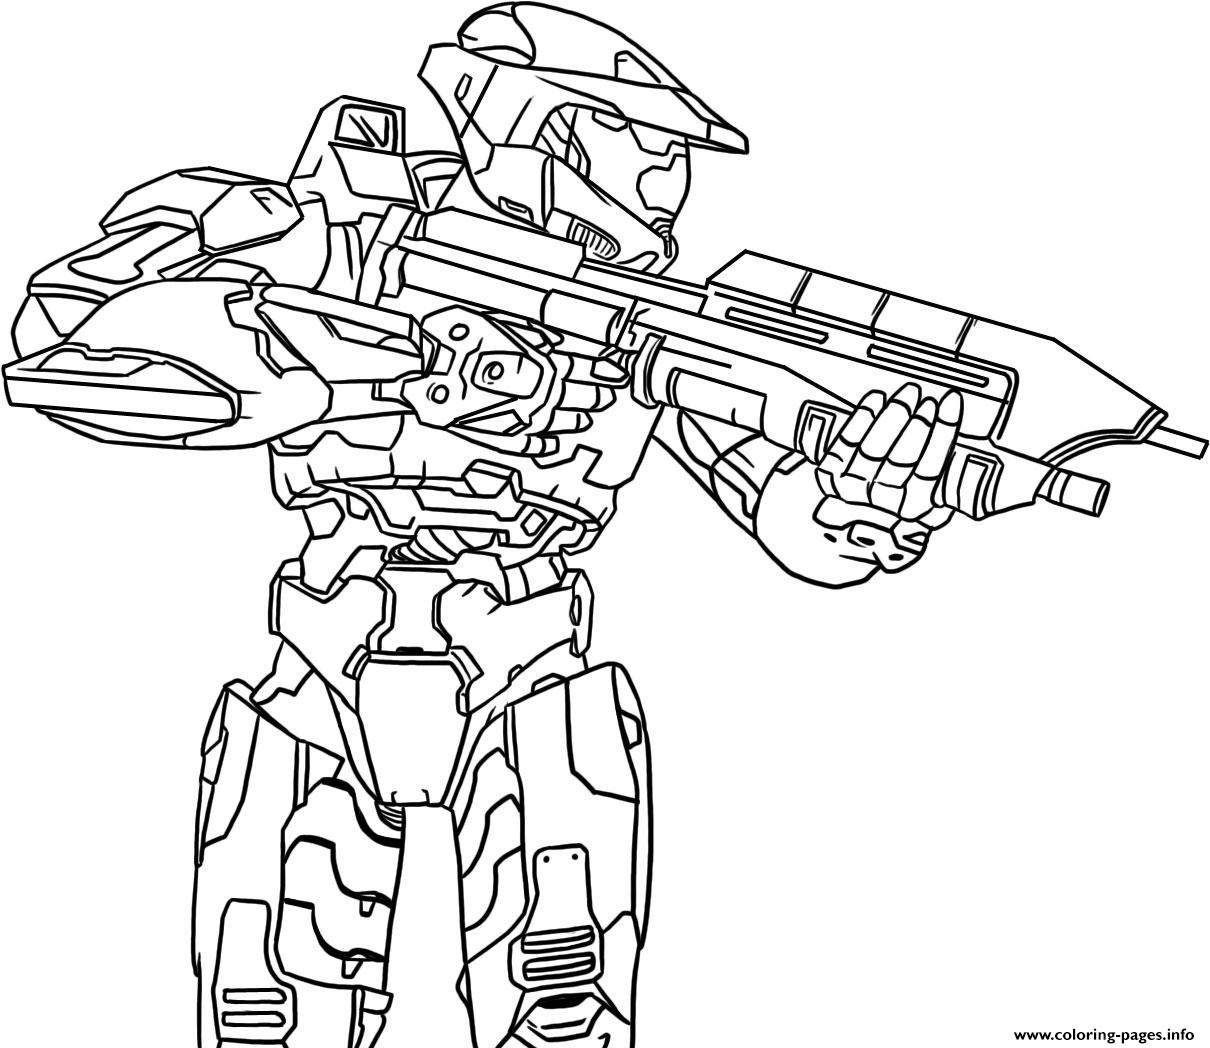 Halo precision coloring pages printable for Free printable halo coloring pages